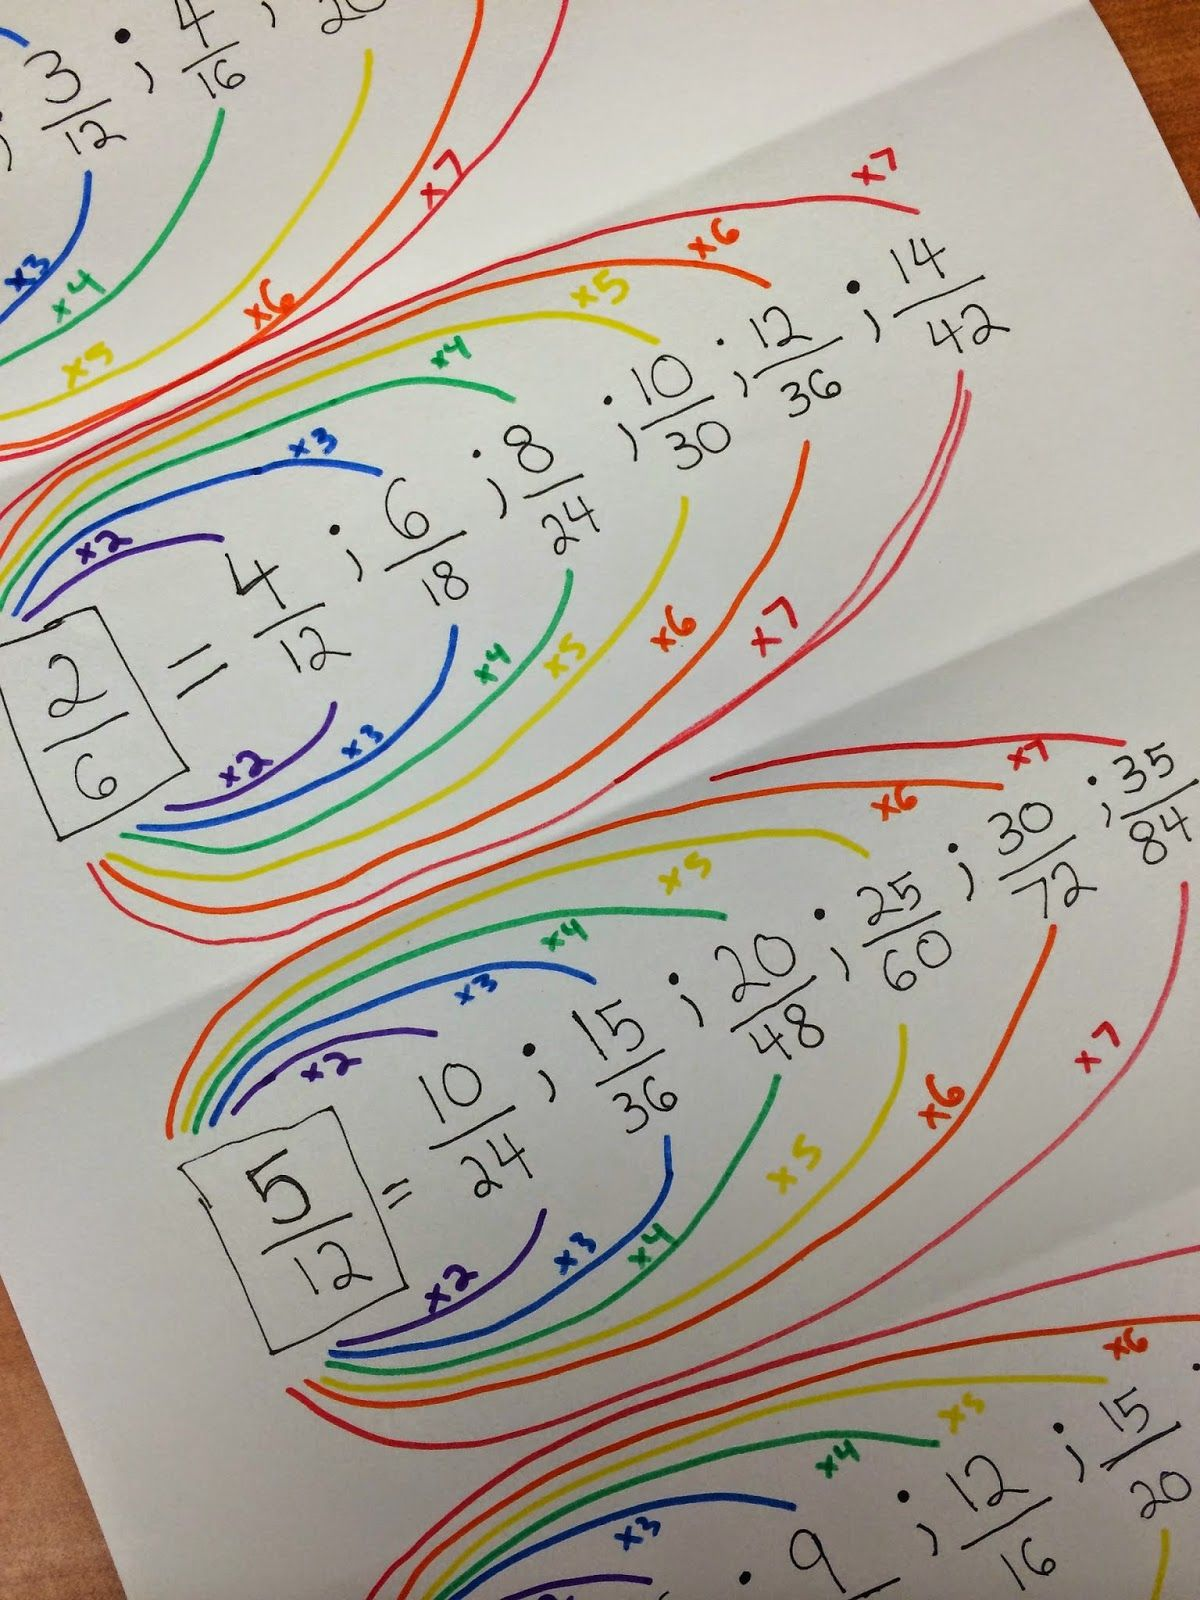 Equivalent Fraction Rainbows For St Patty S Day Real Teachers Learn Math Fractions Math Activities Homeschool Math [ 1600 x 1200 Pixel ]